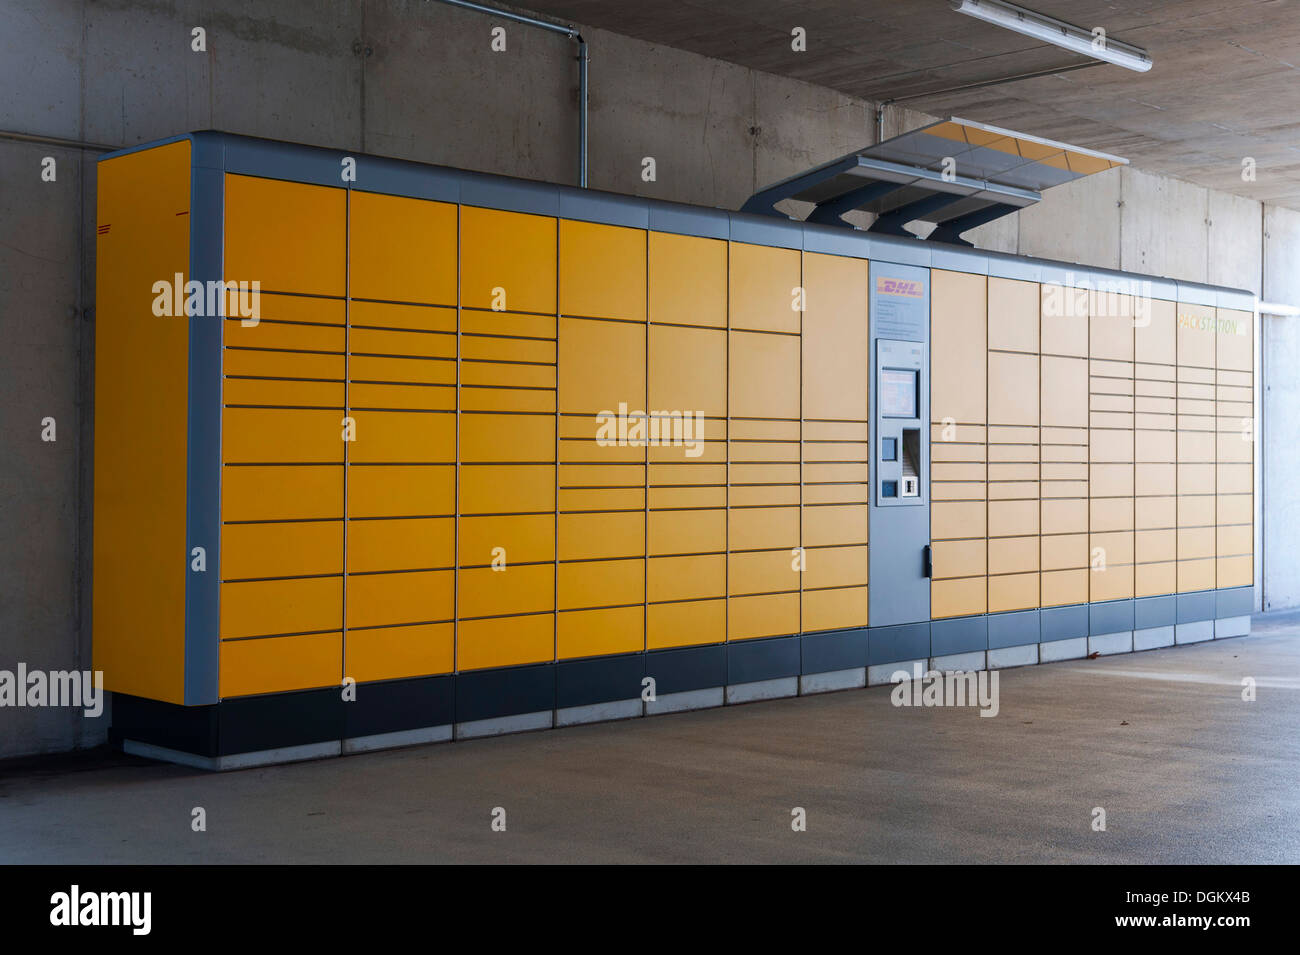 DHL Packstation, automated booths for self-service for collection and dispatch of parcels and oversize letters in Germany - Stock Image